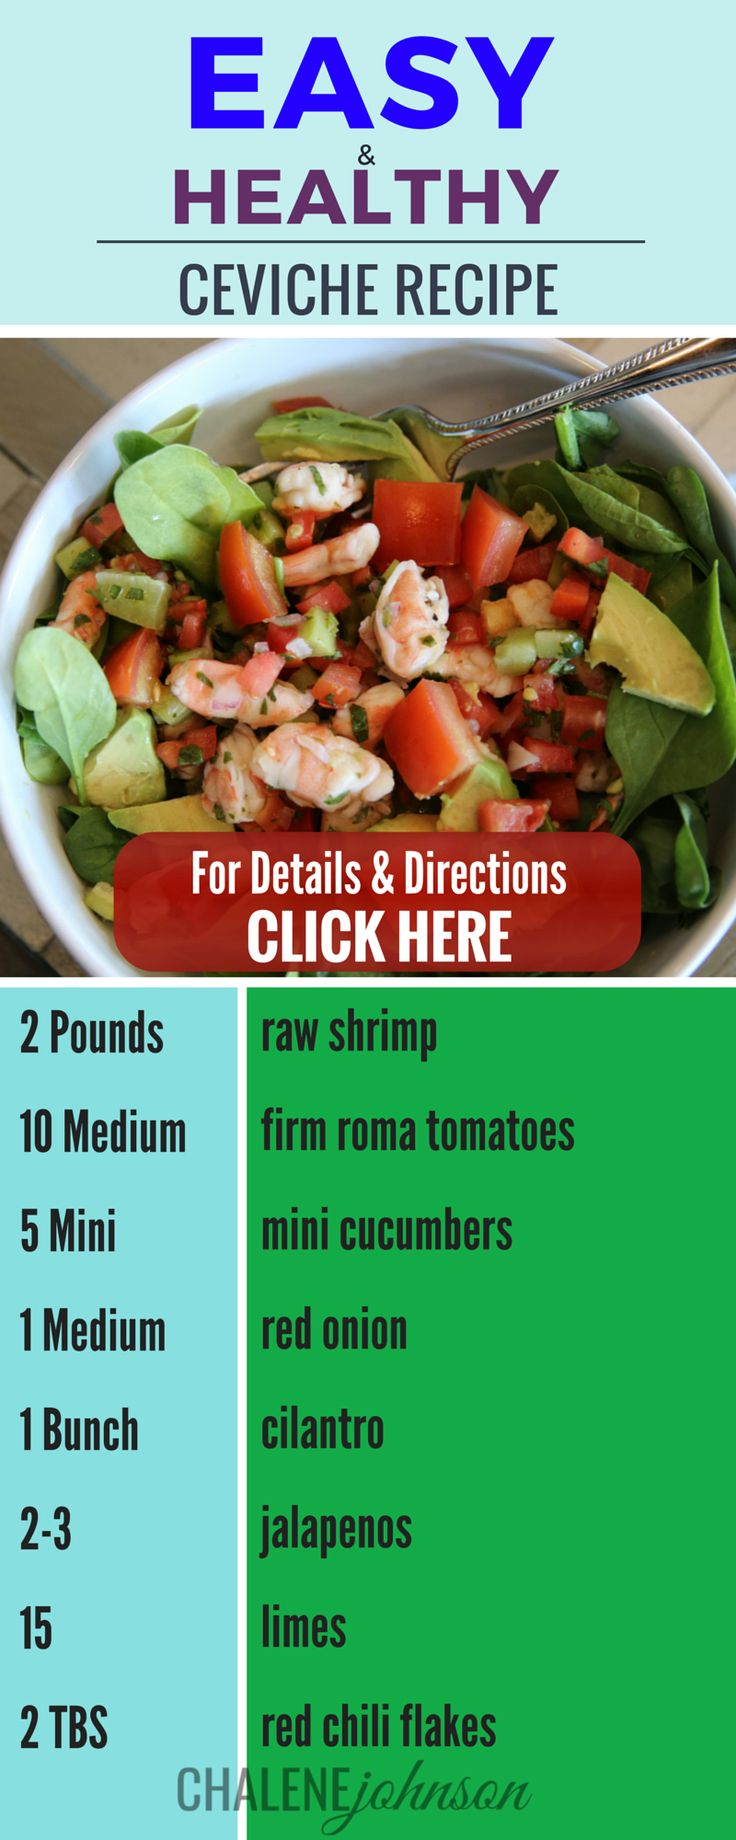 Raw Ceviche recipe from Chalene Johnson's blog! Super easy, no cooking required, and the ingredients can be substituted according to preferred taste! Super healthy and really quick / easy. BONUS: easy on the waistline! Doesn't have to be raw! It can be cooked as well!